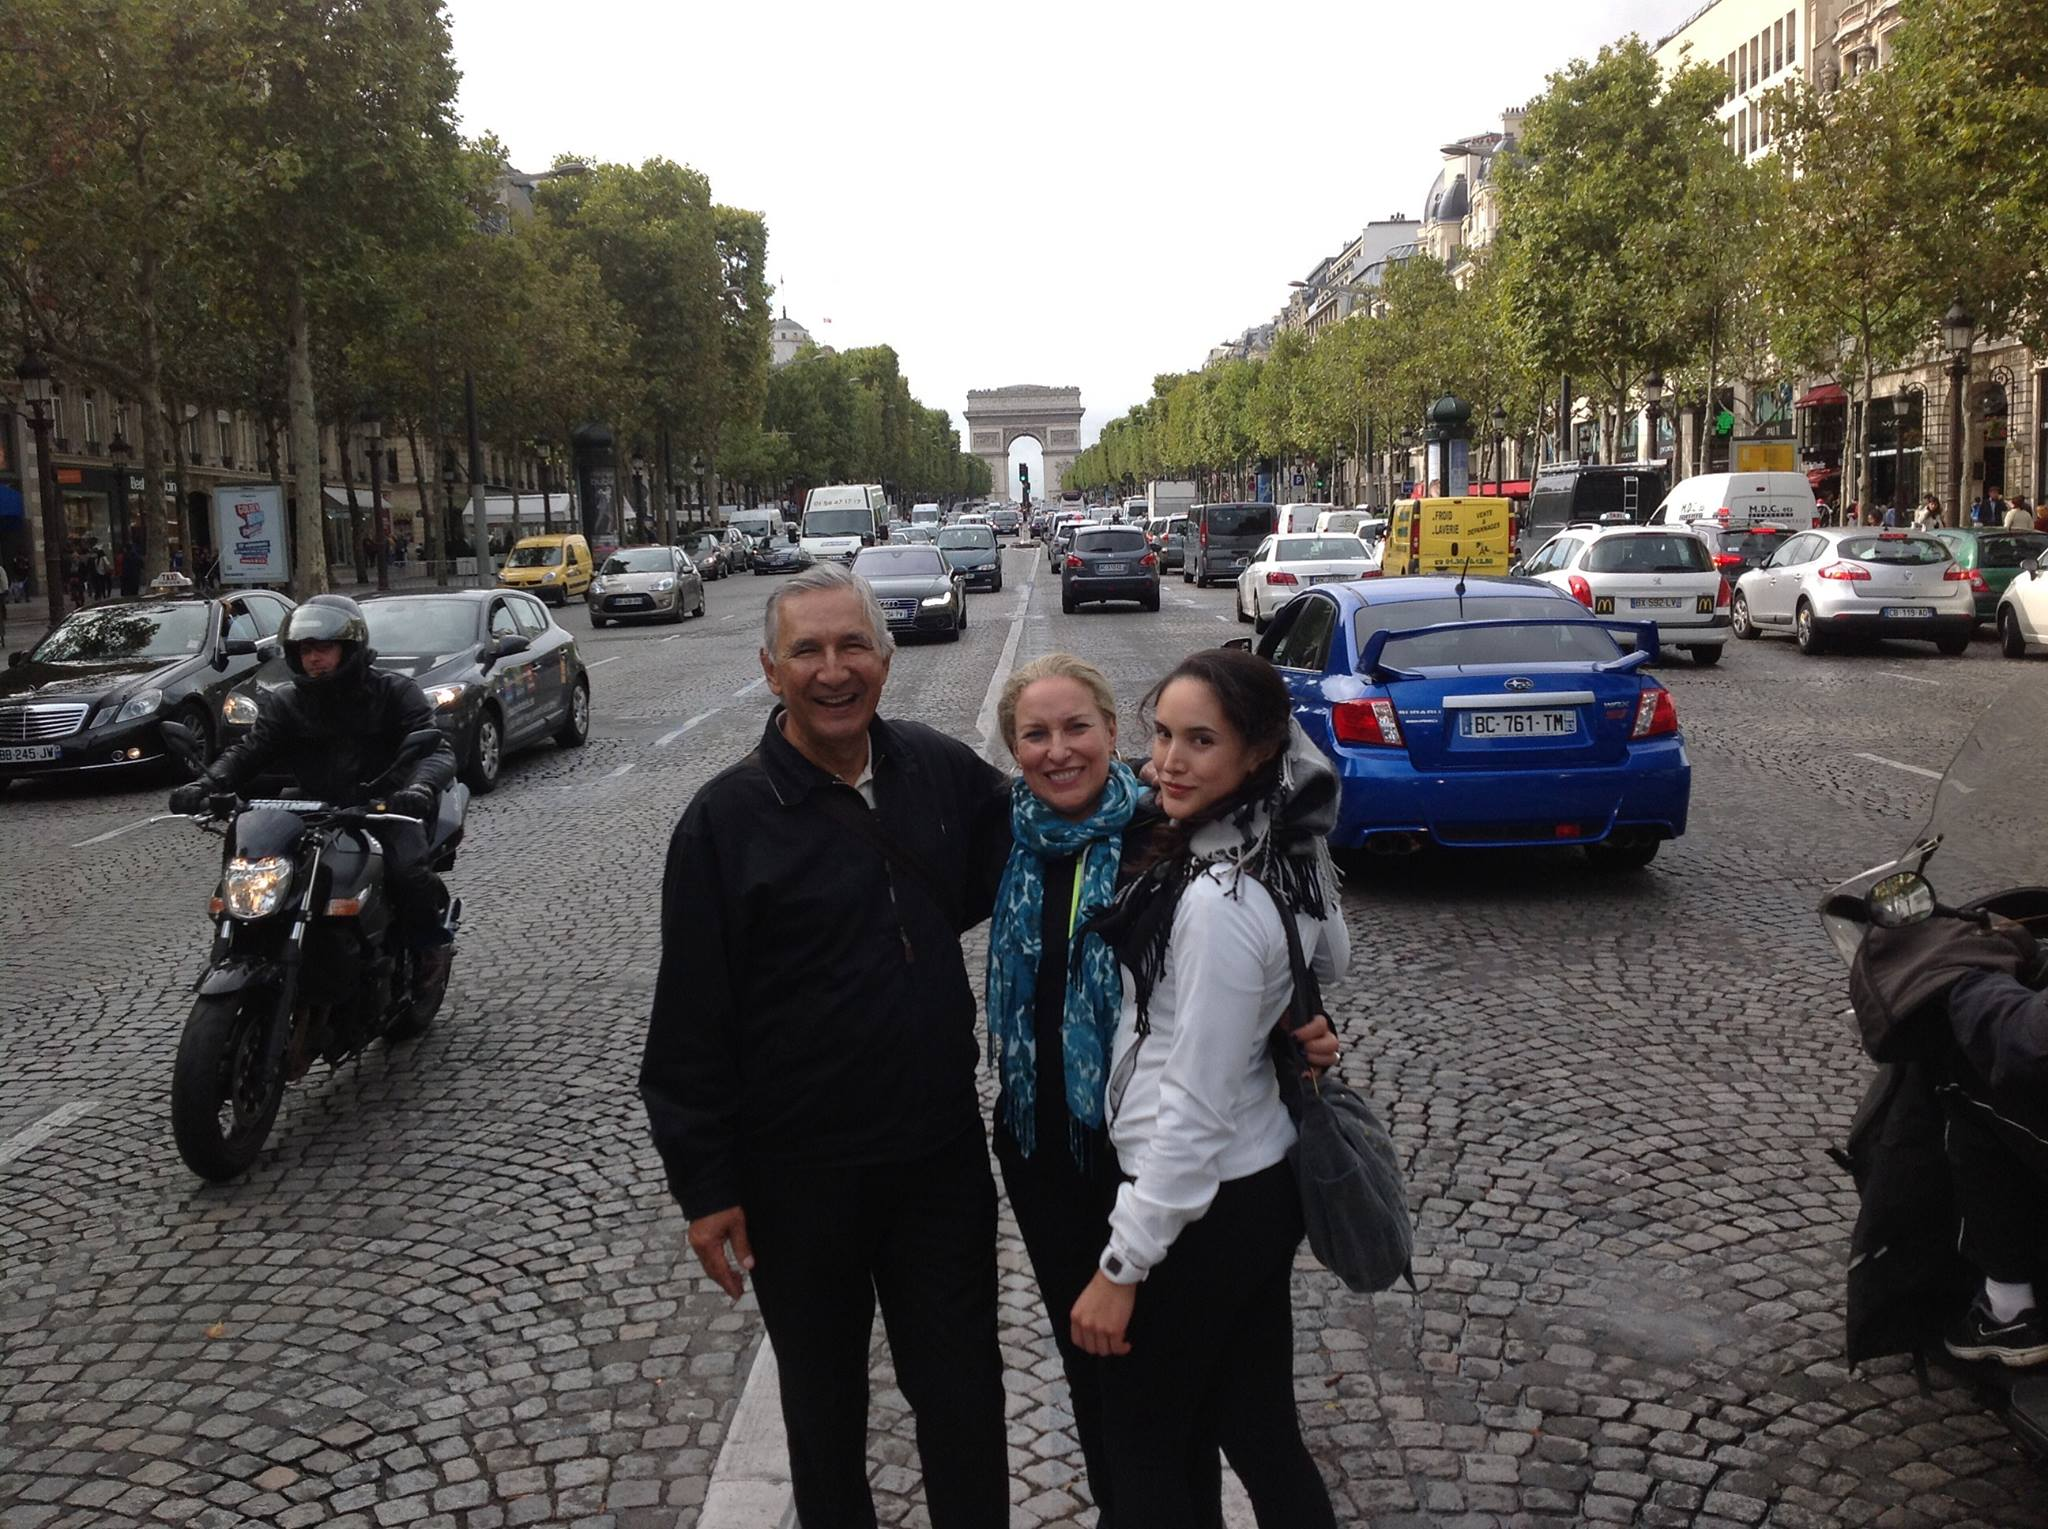 Touring europe with my parents! walking around paris was a good enough workout!